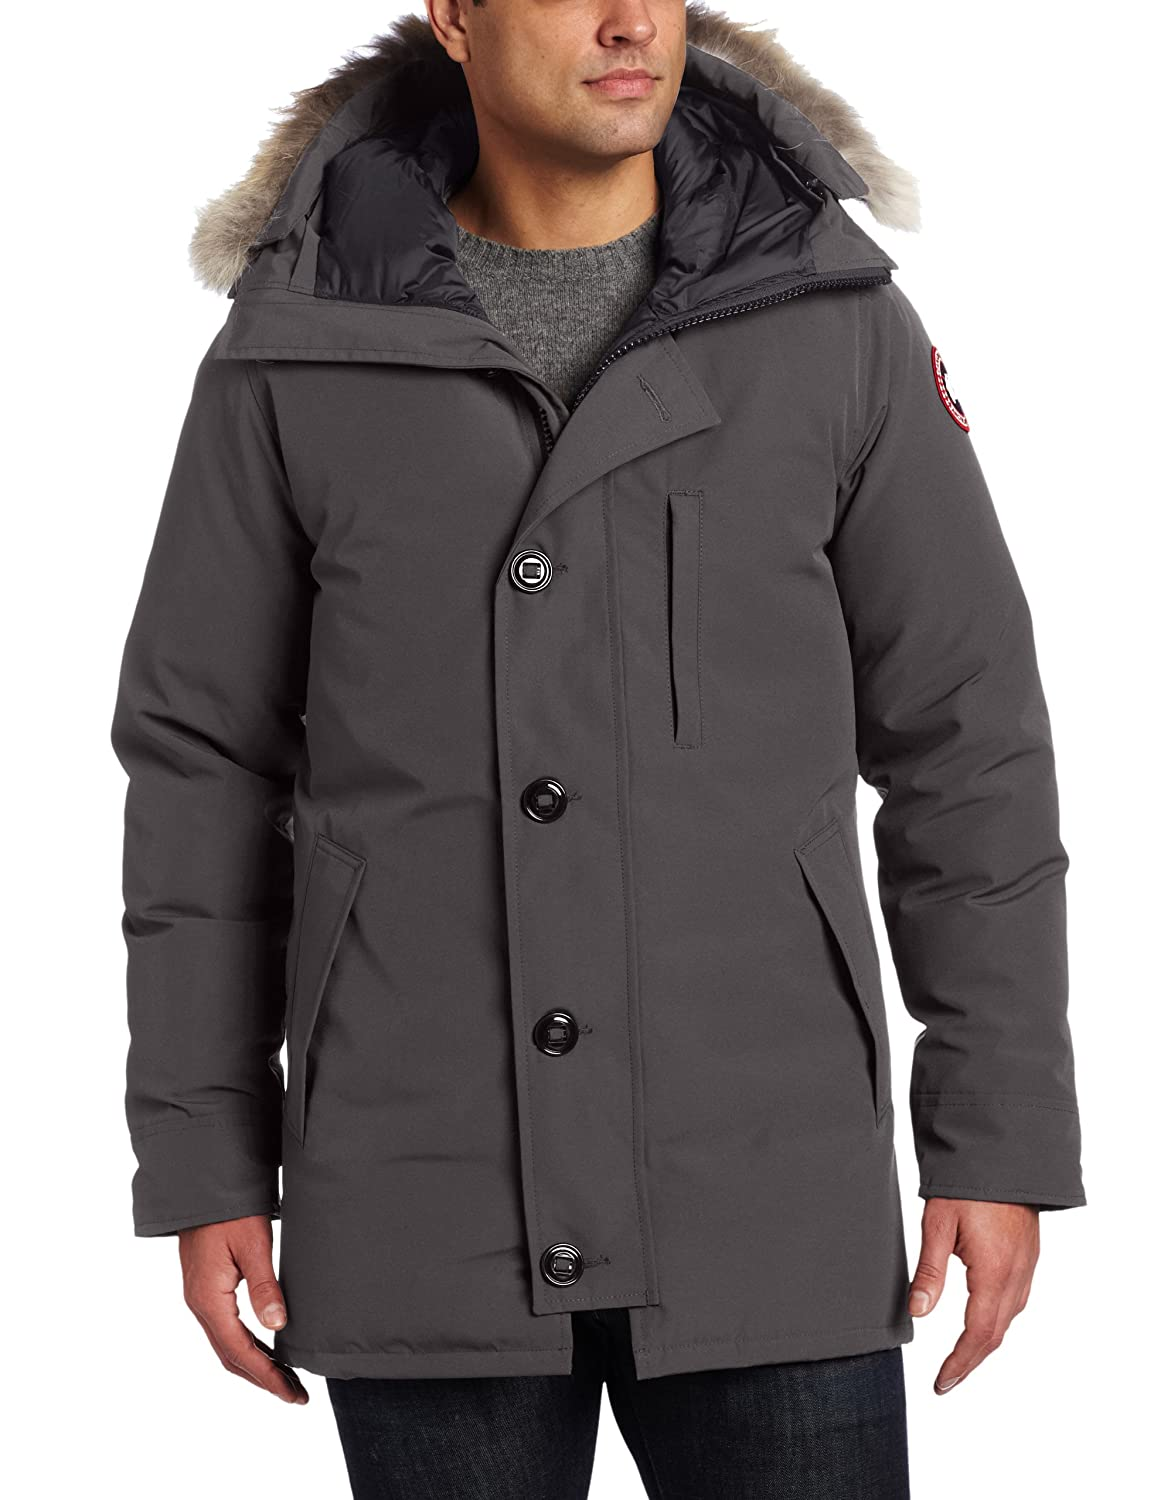 Canada Goose langford parka replica 2016 - Amazon.com: Canada Goose Banff Parka Coat: Sports & Outdoors